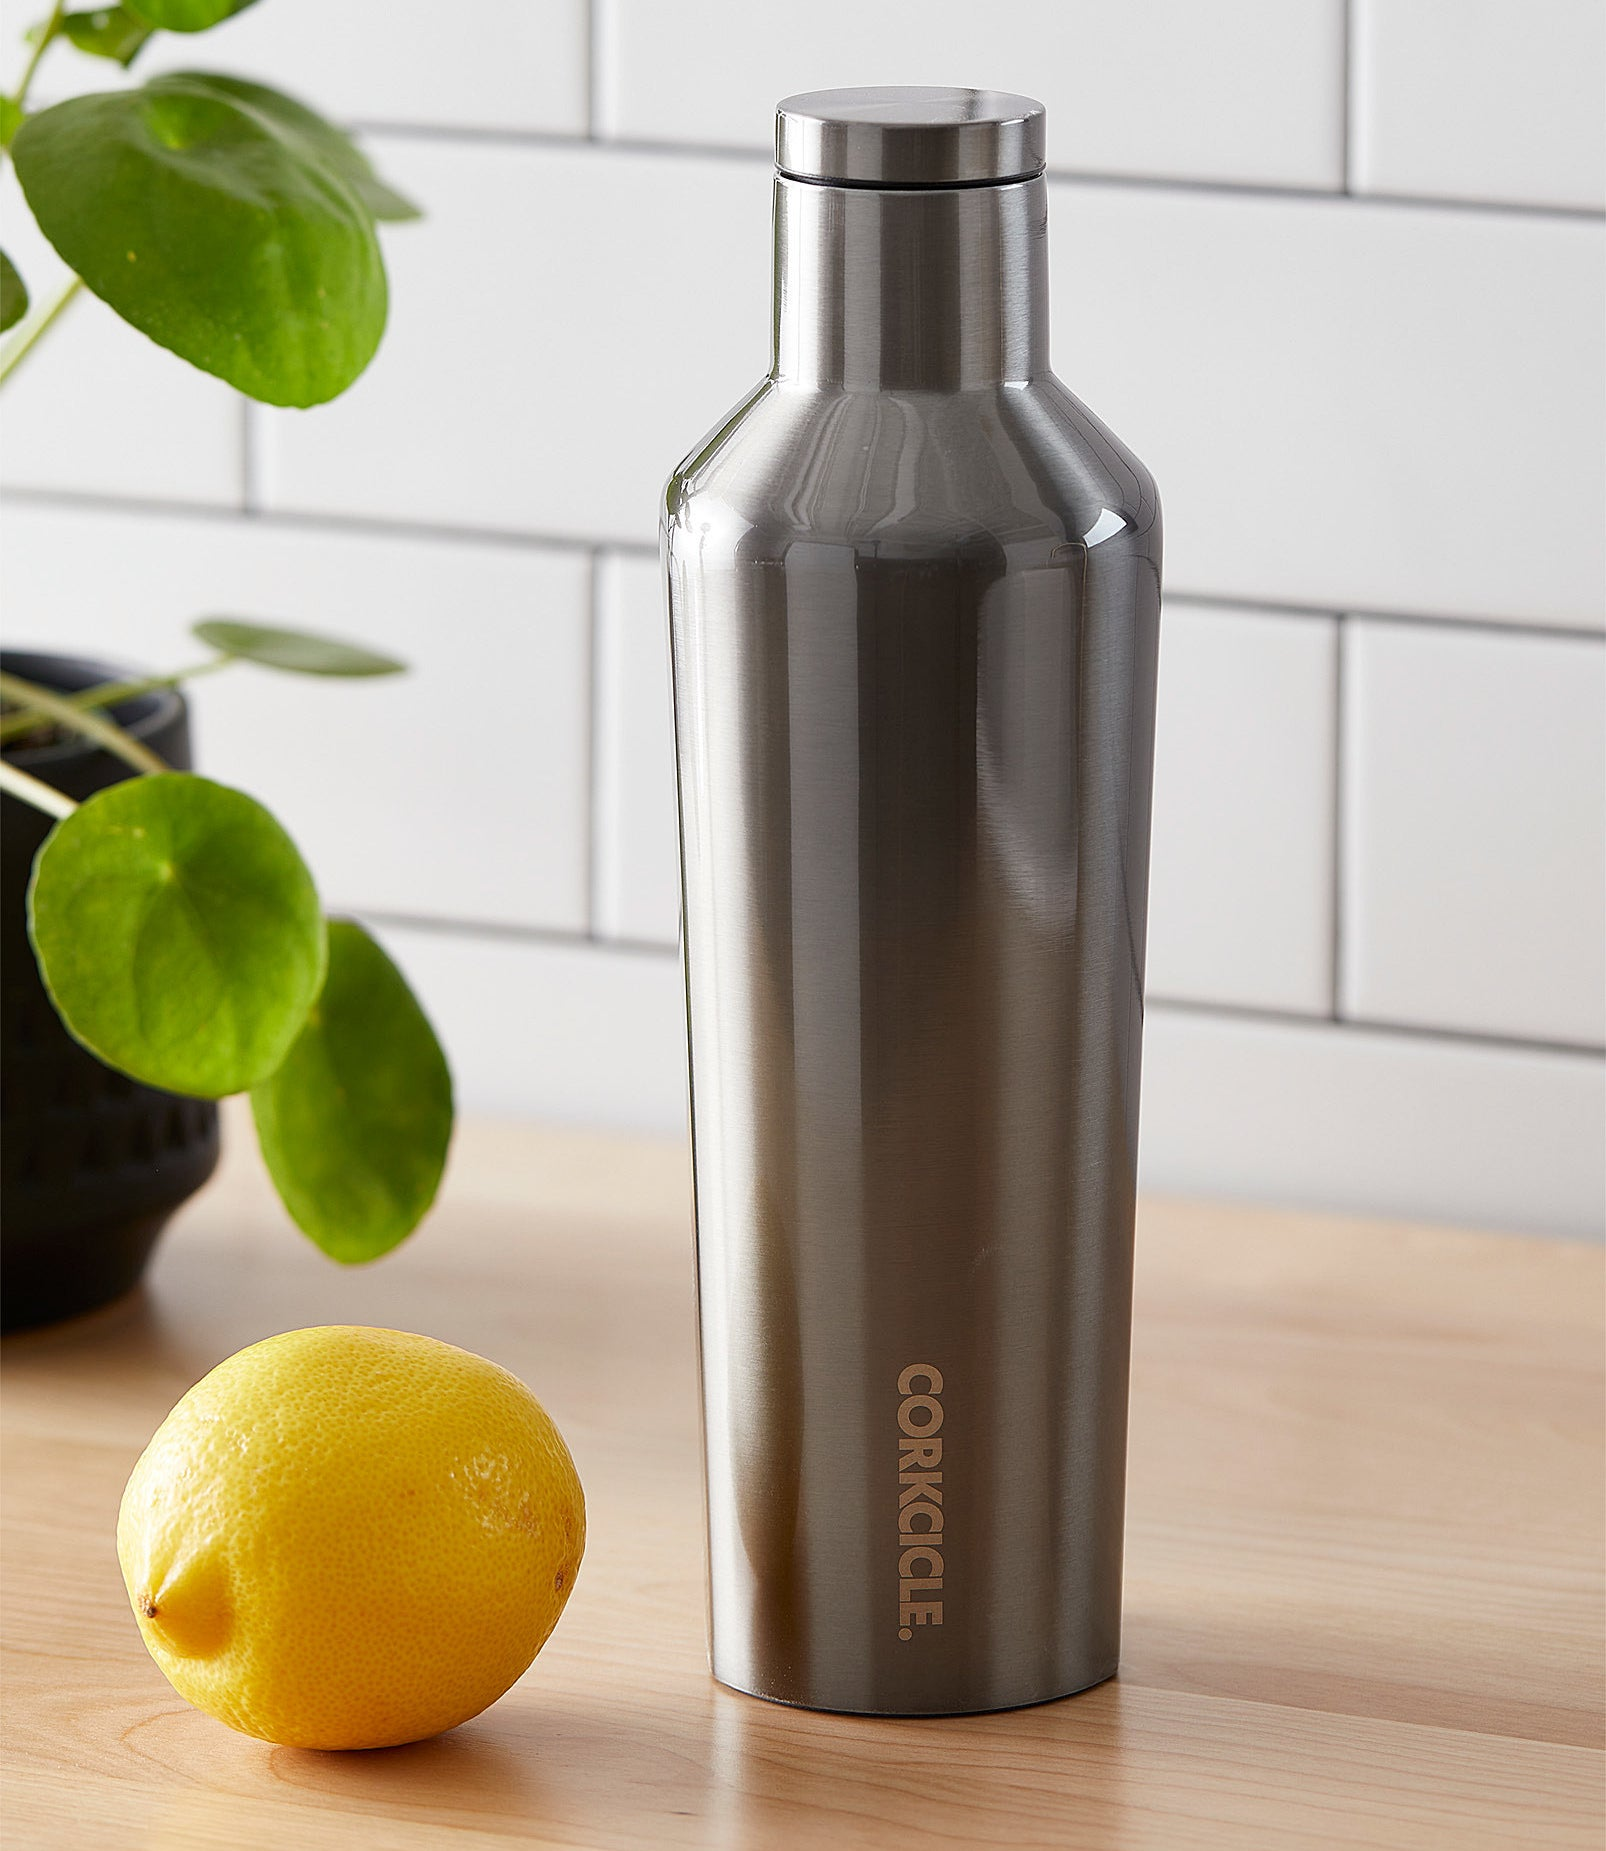 A metallic insulated bottle on a counter next to a lemon